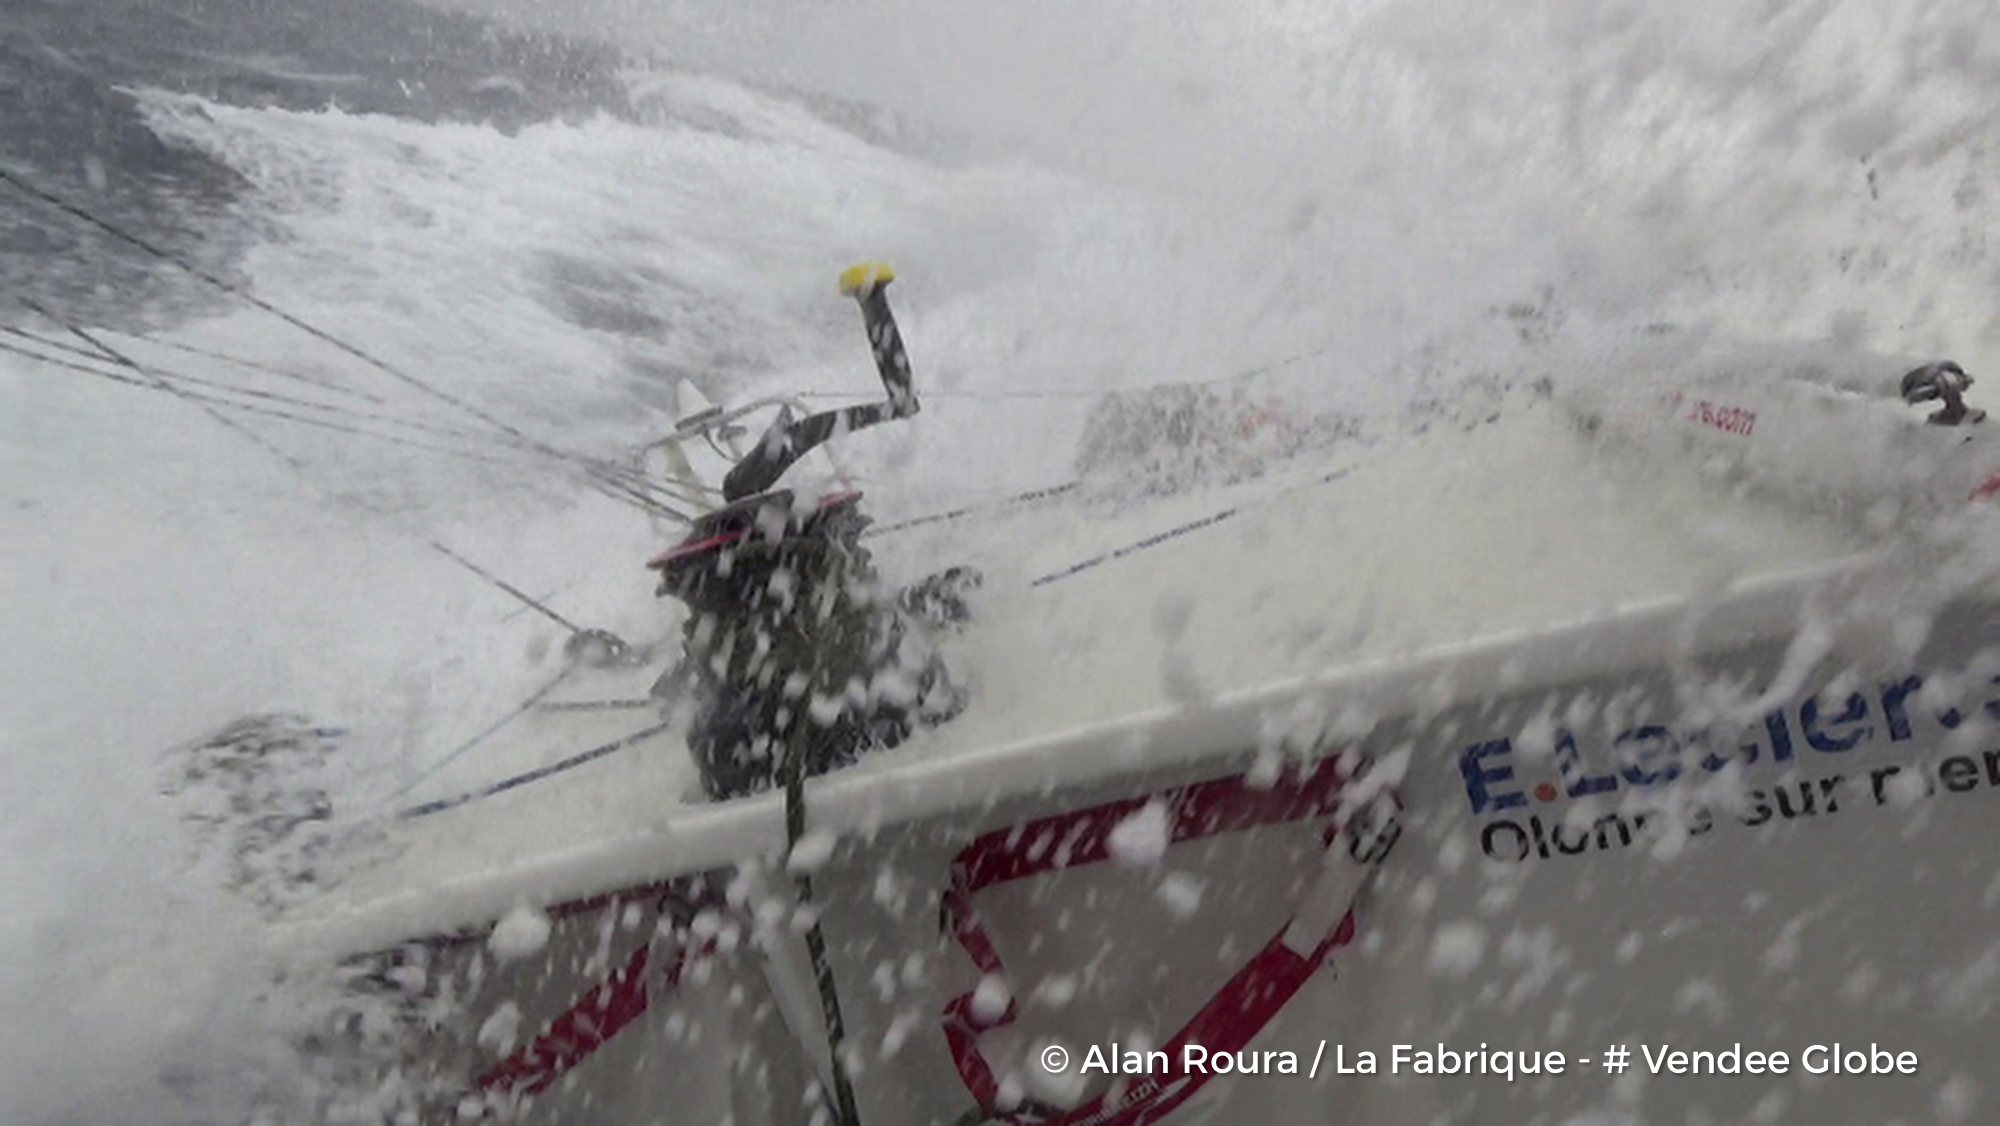 On board during the Vendee Globe. Photo Alan Roura.